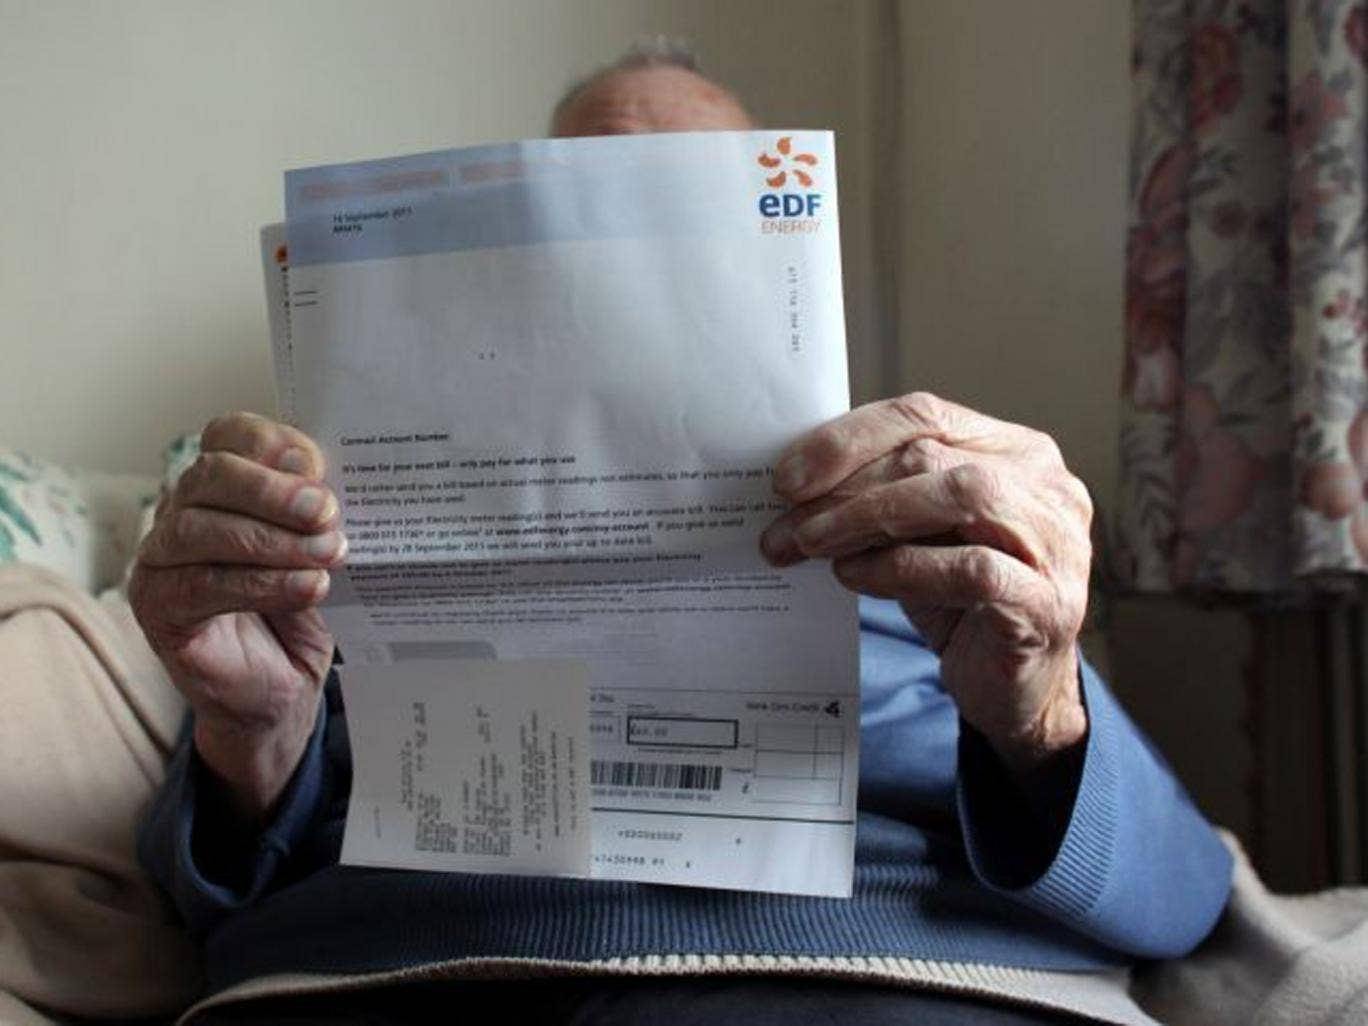 Older people on fixed incomes can struggle to meet the rising cost of their fuel bills